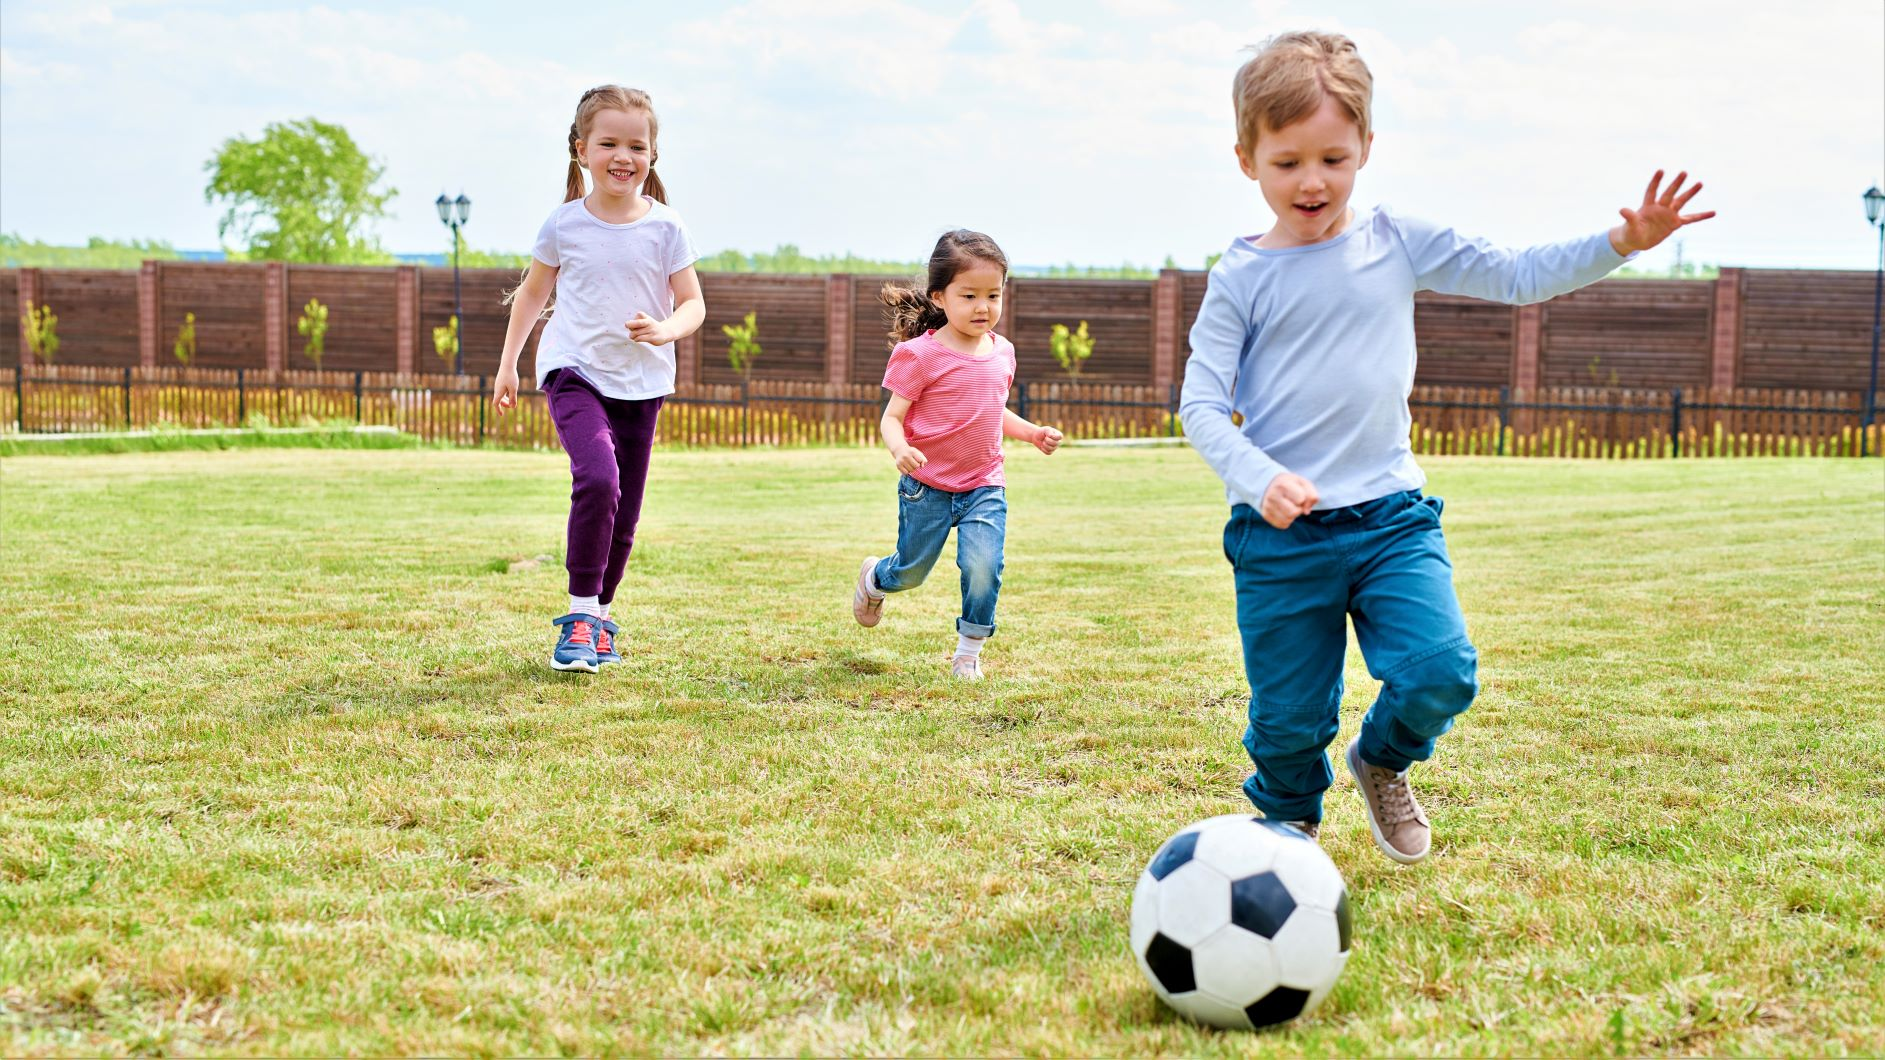 kids-playing-football-CDGA7WR.jpg